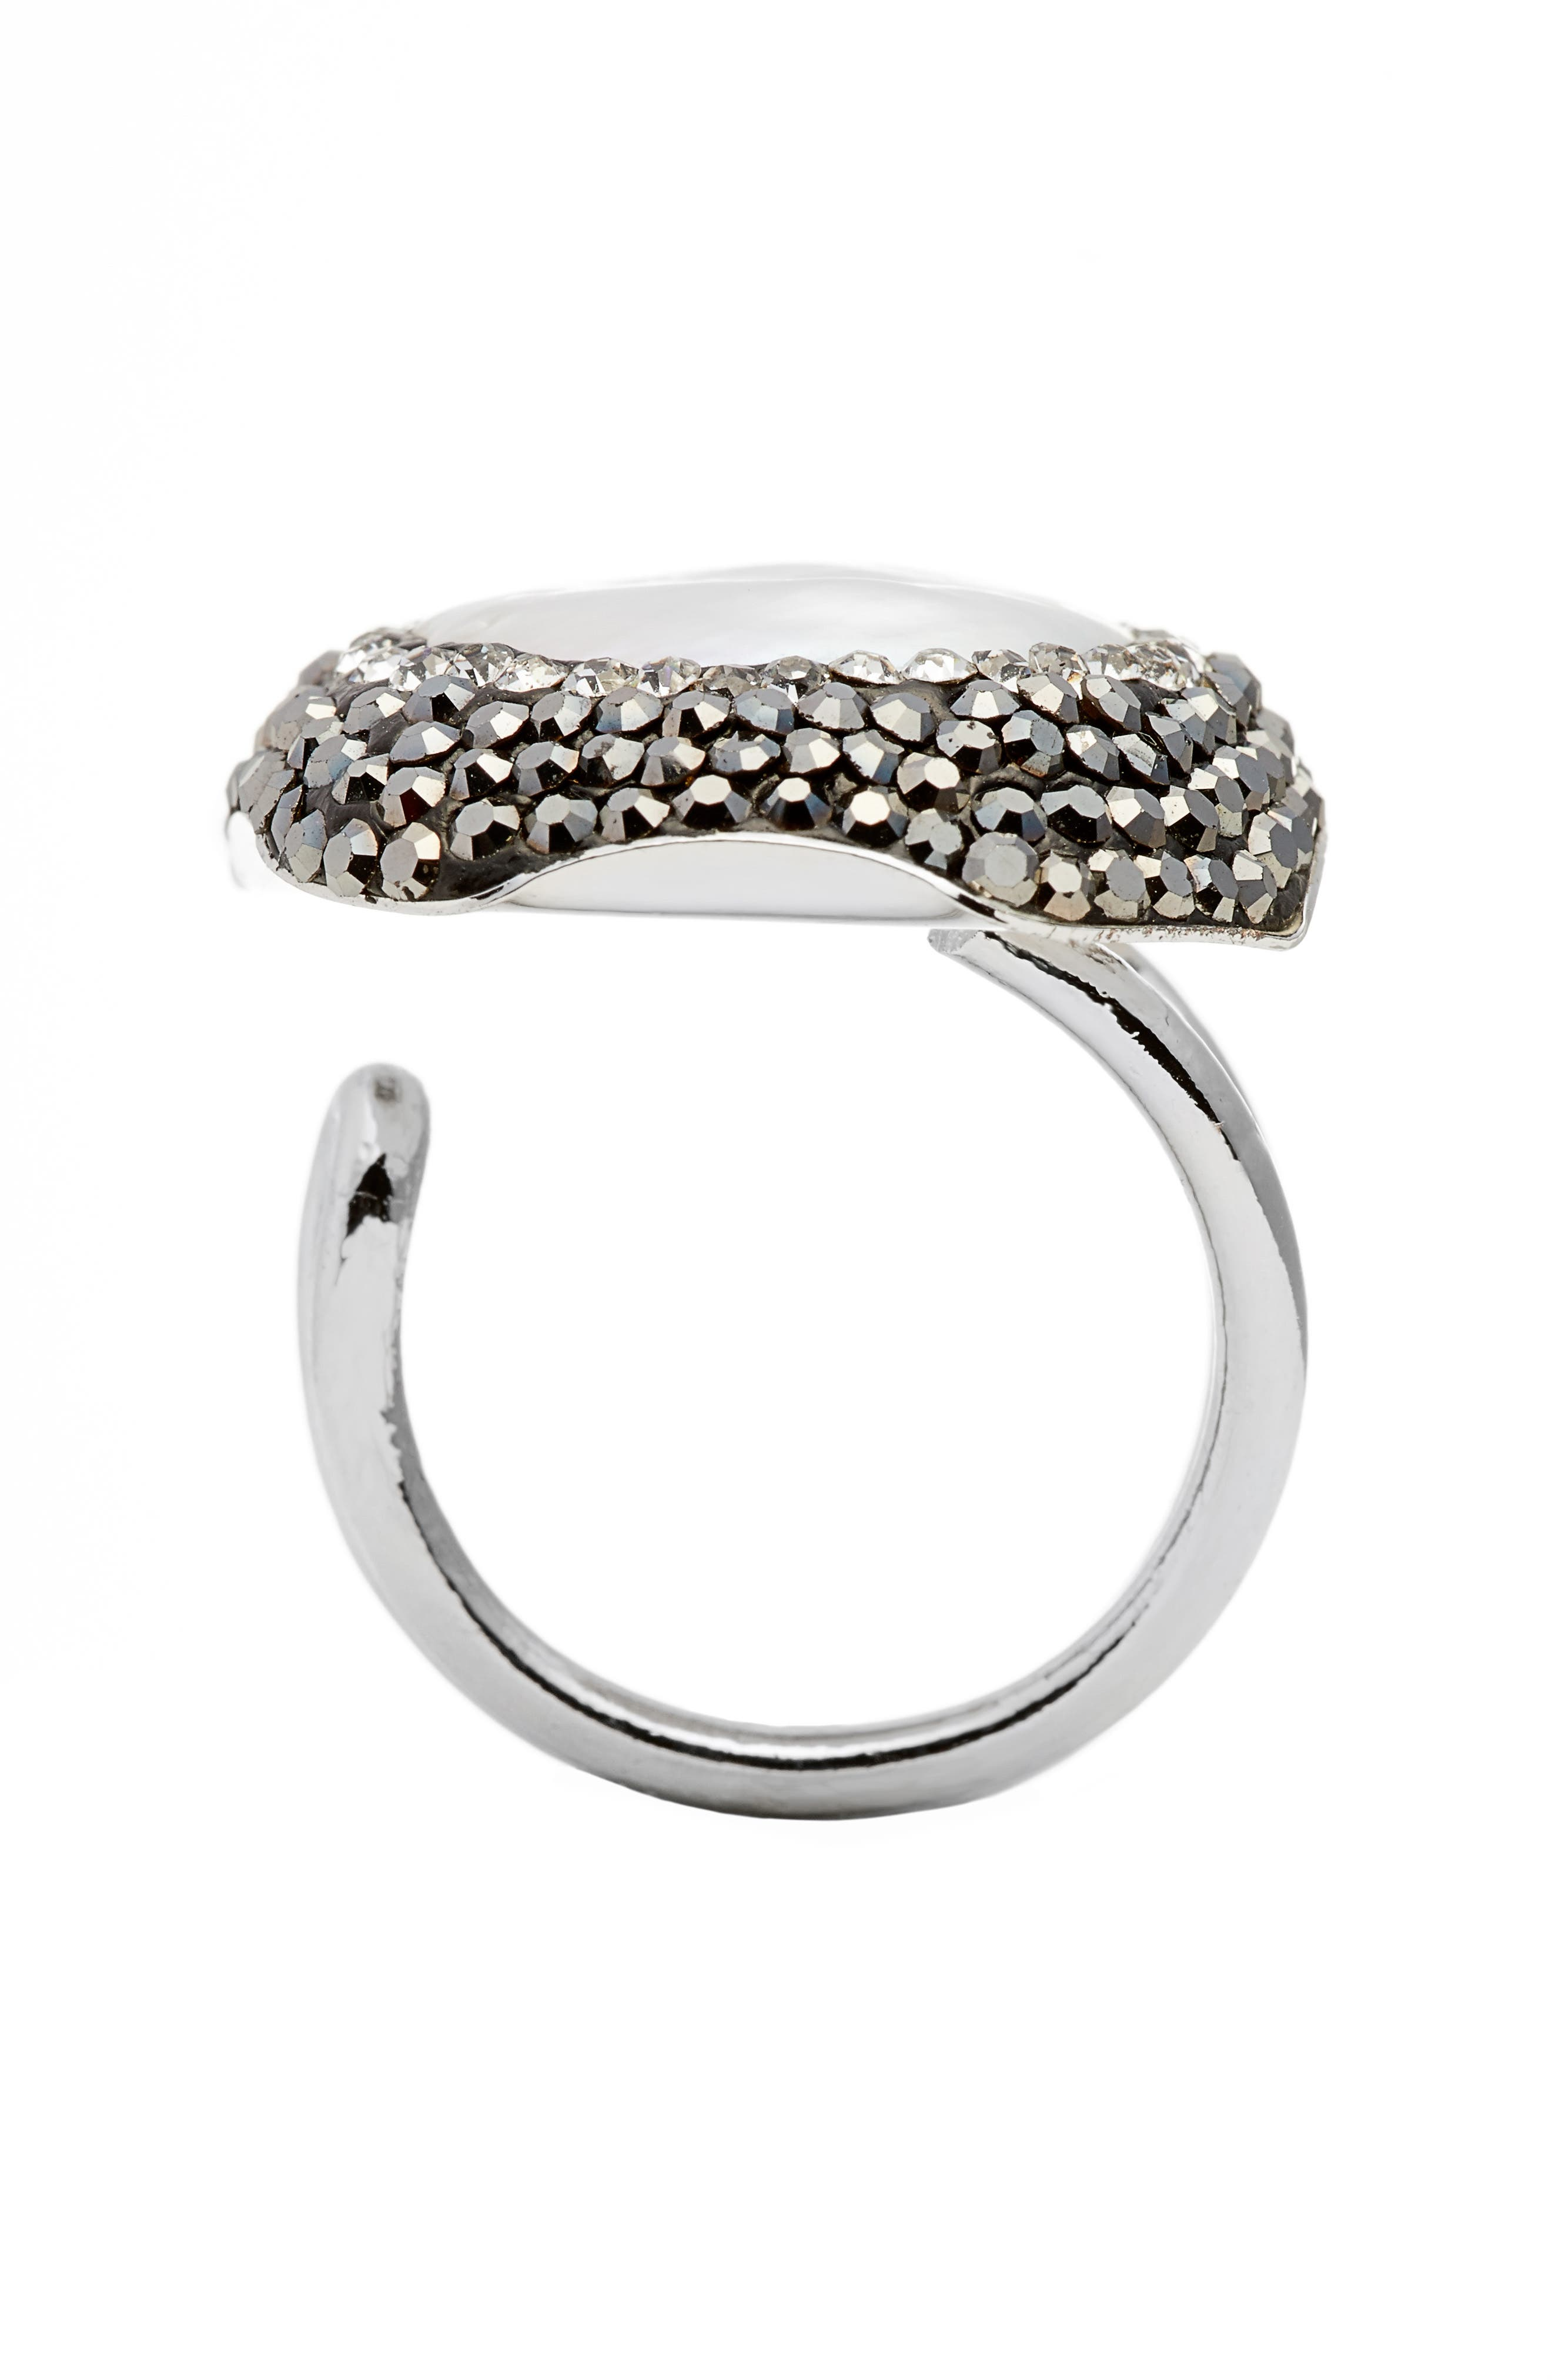 Clarinet Mother-of-Pearl & Crystal Adjustable Ring,                             Alternate thumbnail 2, color,                             900